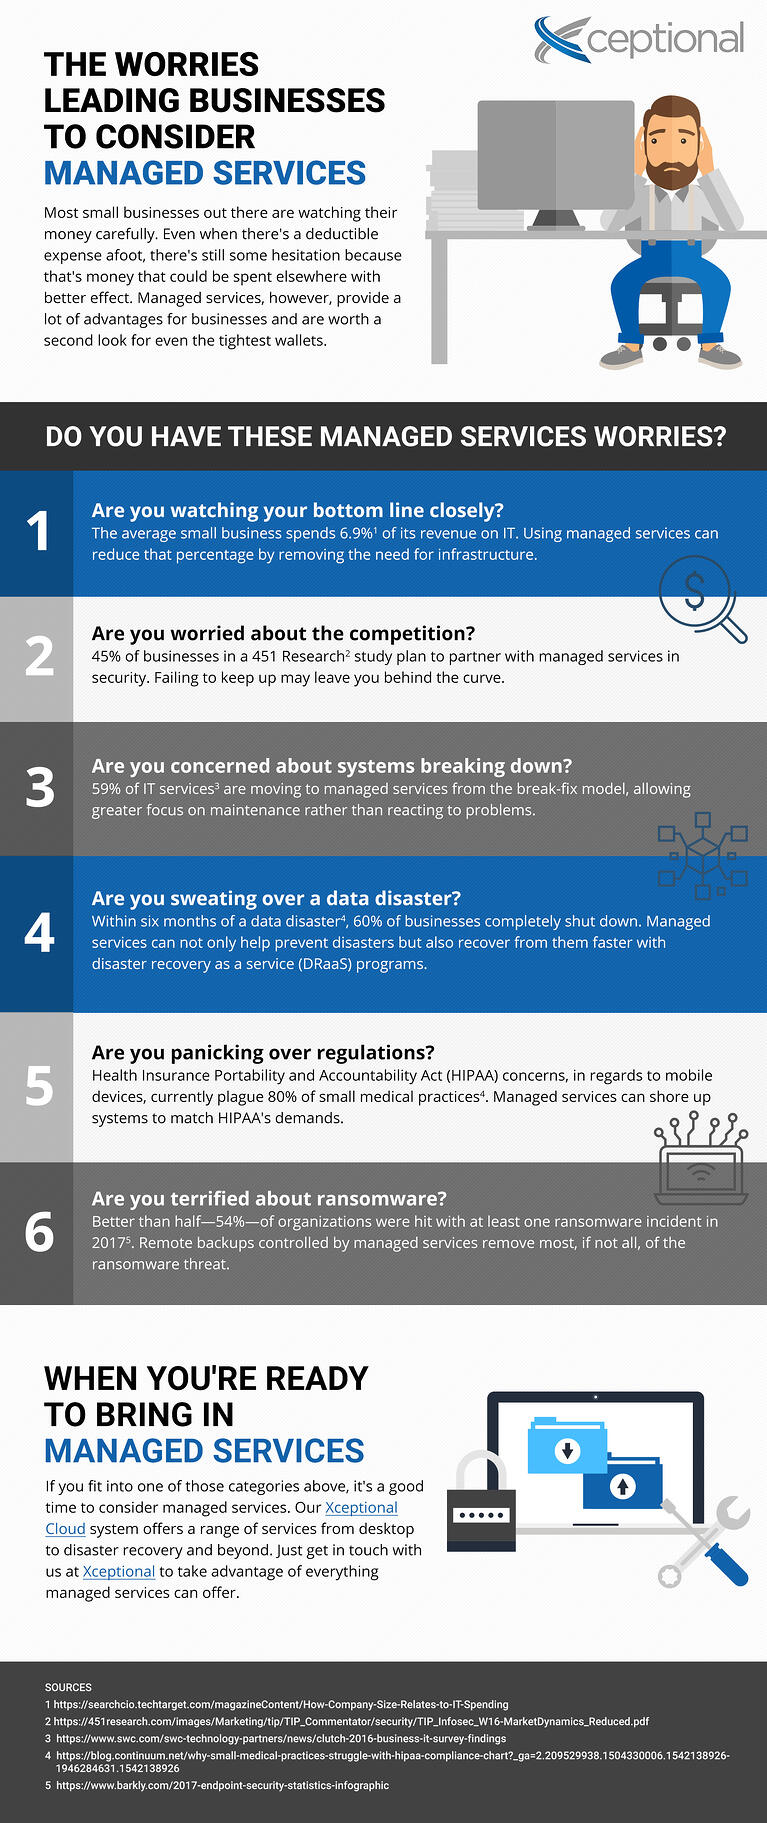 [Infographic] The Worries Leading Businesses to Consider Managed Services